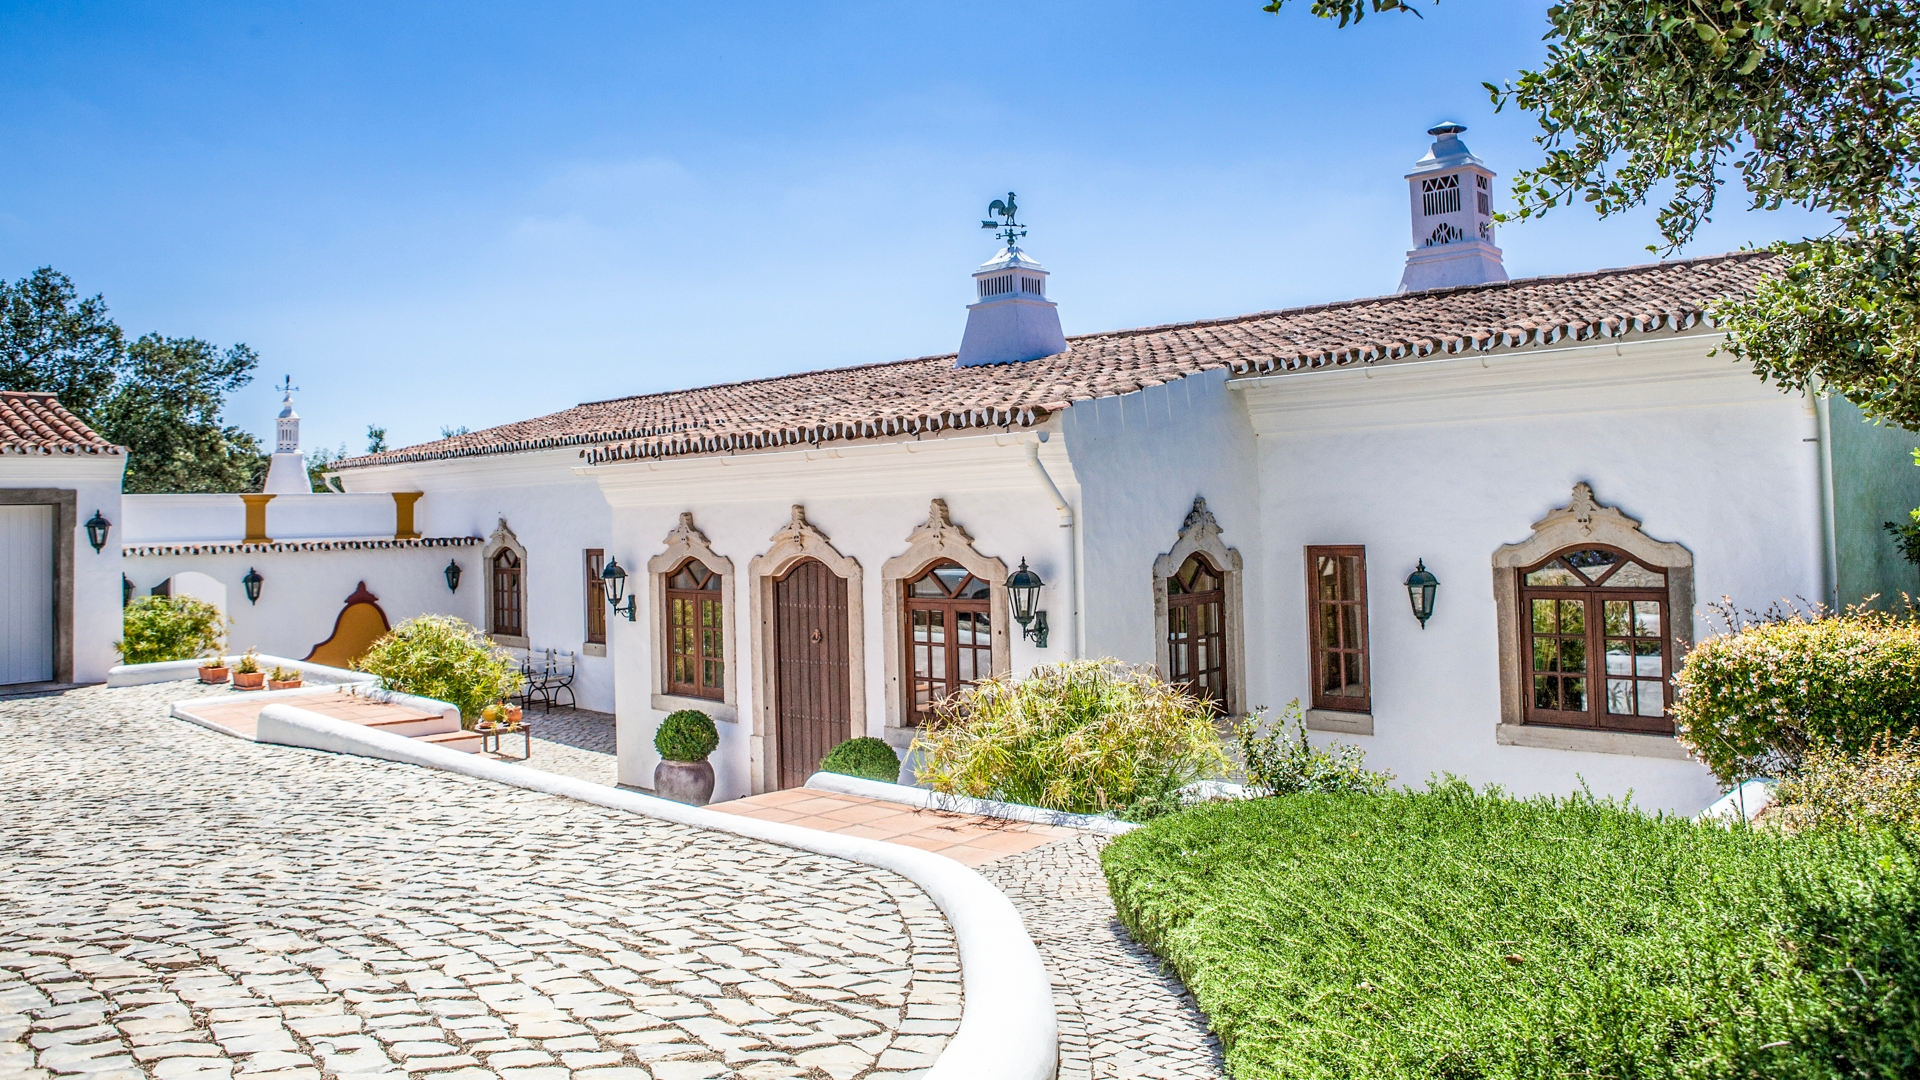 Charming Quinta Style Property with Pool in Goldra, near Loulé | PRB050 4 bedroom quinta with pool near Loulé. It has a big living area and plot, wonderful covered terraces and a great country-side view. A short drive from amenities and beaches.